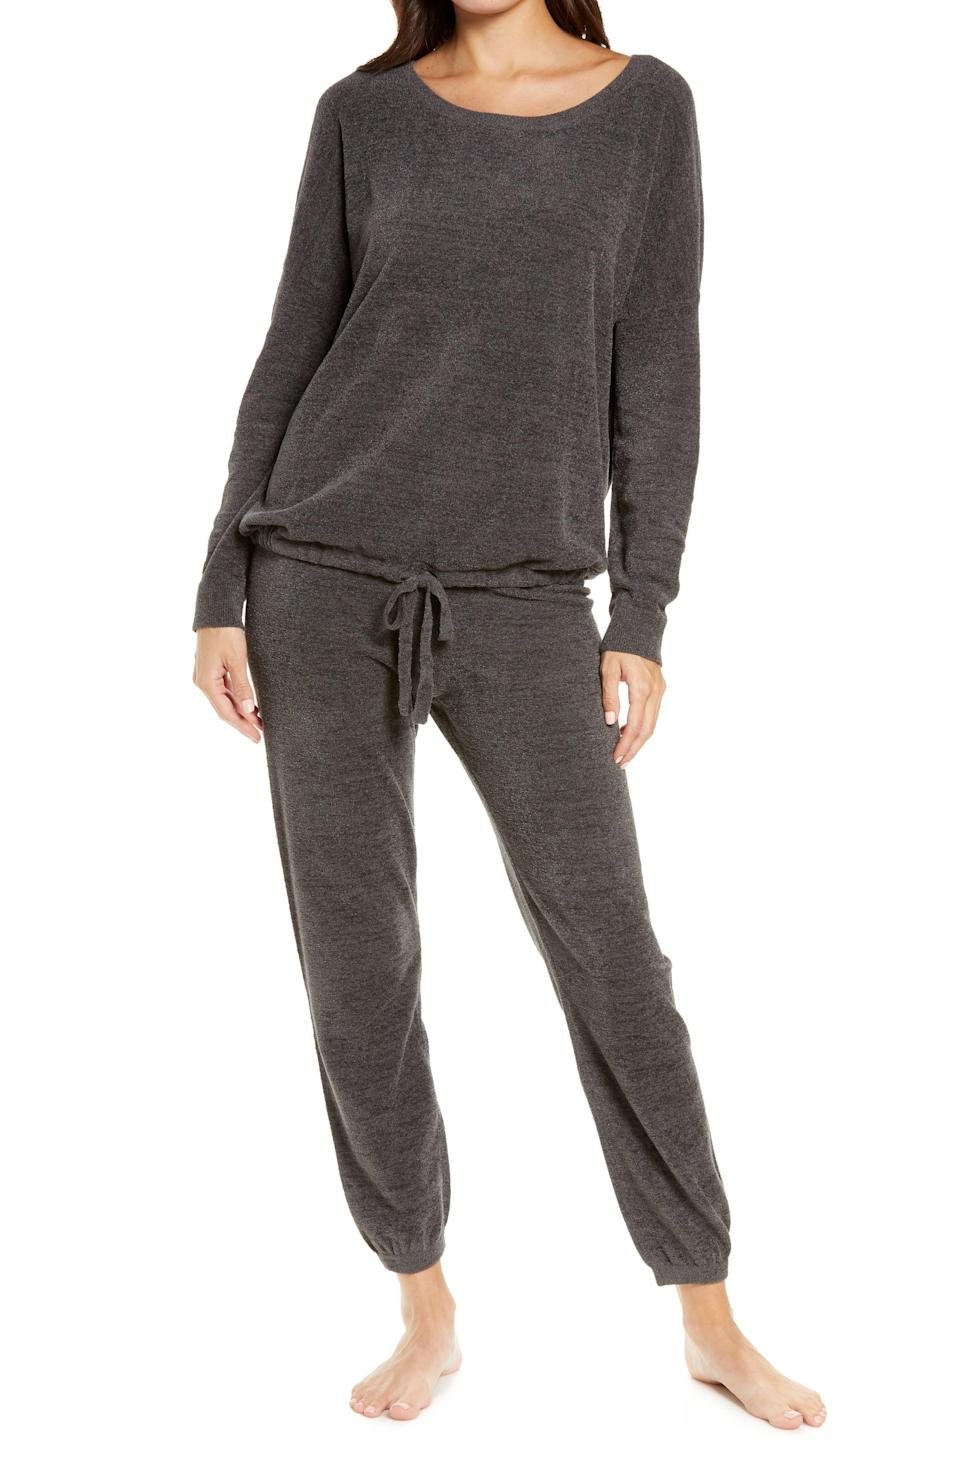 """<p><strong>Barefoot DreamsR</strong></p><p>nordstrom.com</p><p><strong>$188.00</strong></p><p><a href=""""https://go.redirectingat.com?id=74968X1596630&url=https%3A%2F%2Fwww.nordstrom.com%2Fs%2Fbarefoot-dreams-cozychic-luxe-long-sleeve-pajamas%2F5923481&sref=https%3A%2F%2Fwww.womenshealthmag.com%2Flife%2Fg37581188%2Fpajamas-for-women%2F"""" rel=""""nofollow noopener"""" target=""""_blank"""" data-ylk=""""slk:Shop Now"""" class=""""link rapid-noclick-resp"""">Shop Now</a></p><p>Slouchy pajamas need a space in every person's PJ drawer. Between the drawstring at the waist and hem, you get a totally customized fit anyone's bound to love. </p><p>They're made of a super soft fabric perfect for lounging or sleeping.</p>"""